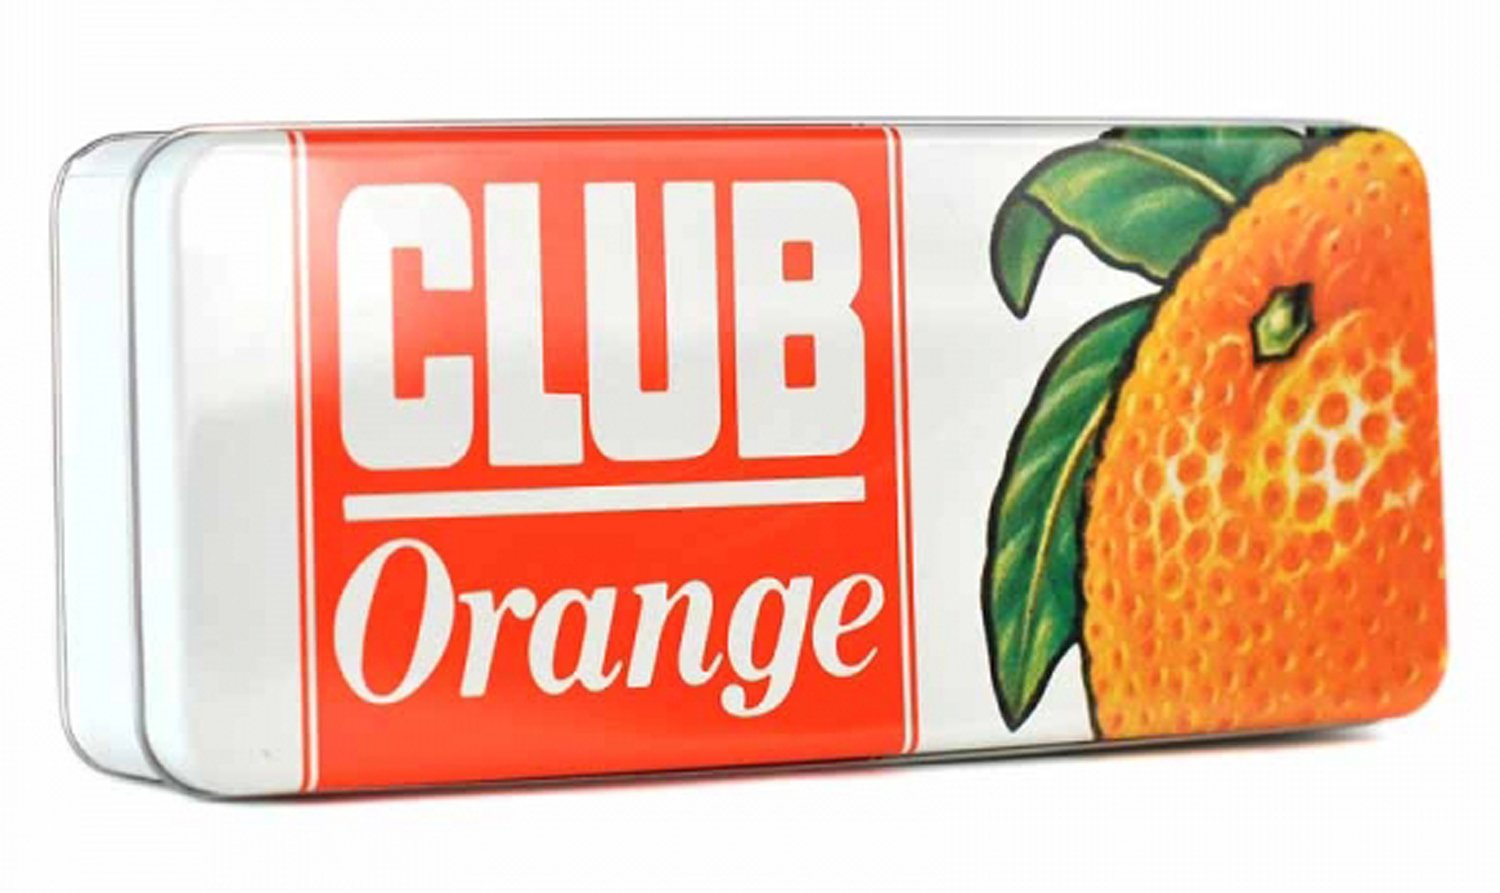 Jacobs Club Orange Storage Tin - Rectangular (23.5cm Long by 10cm Wide by 5cm high) Half Moon Bay